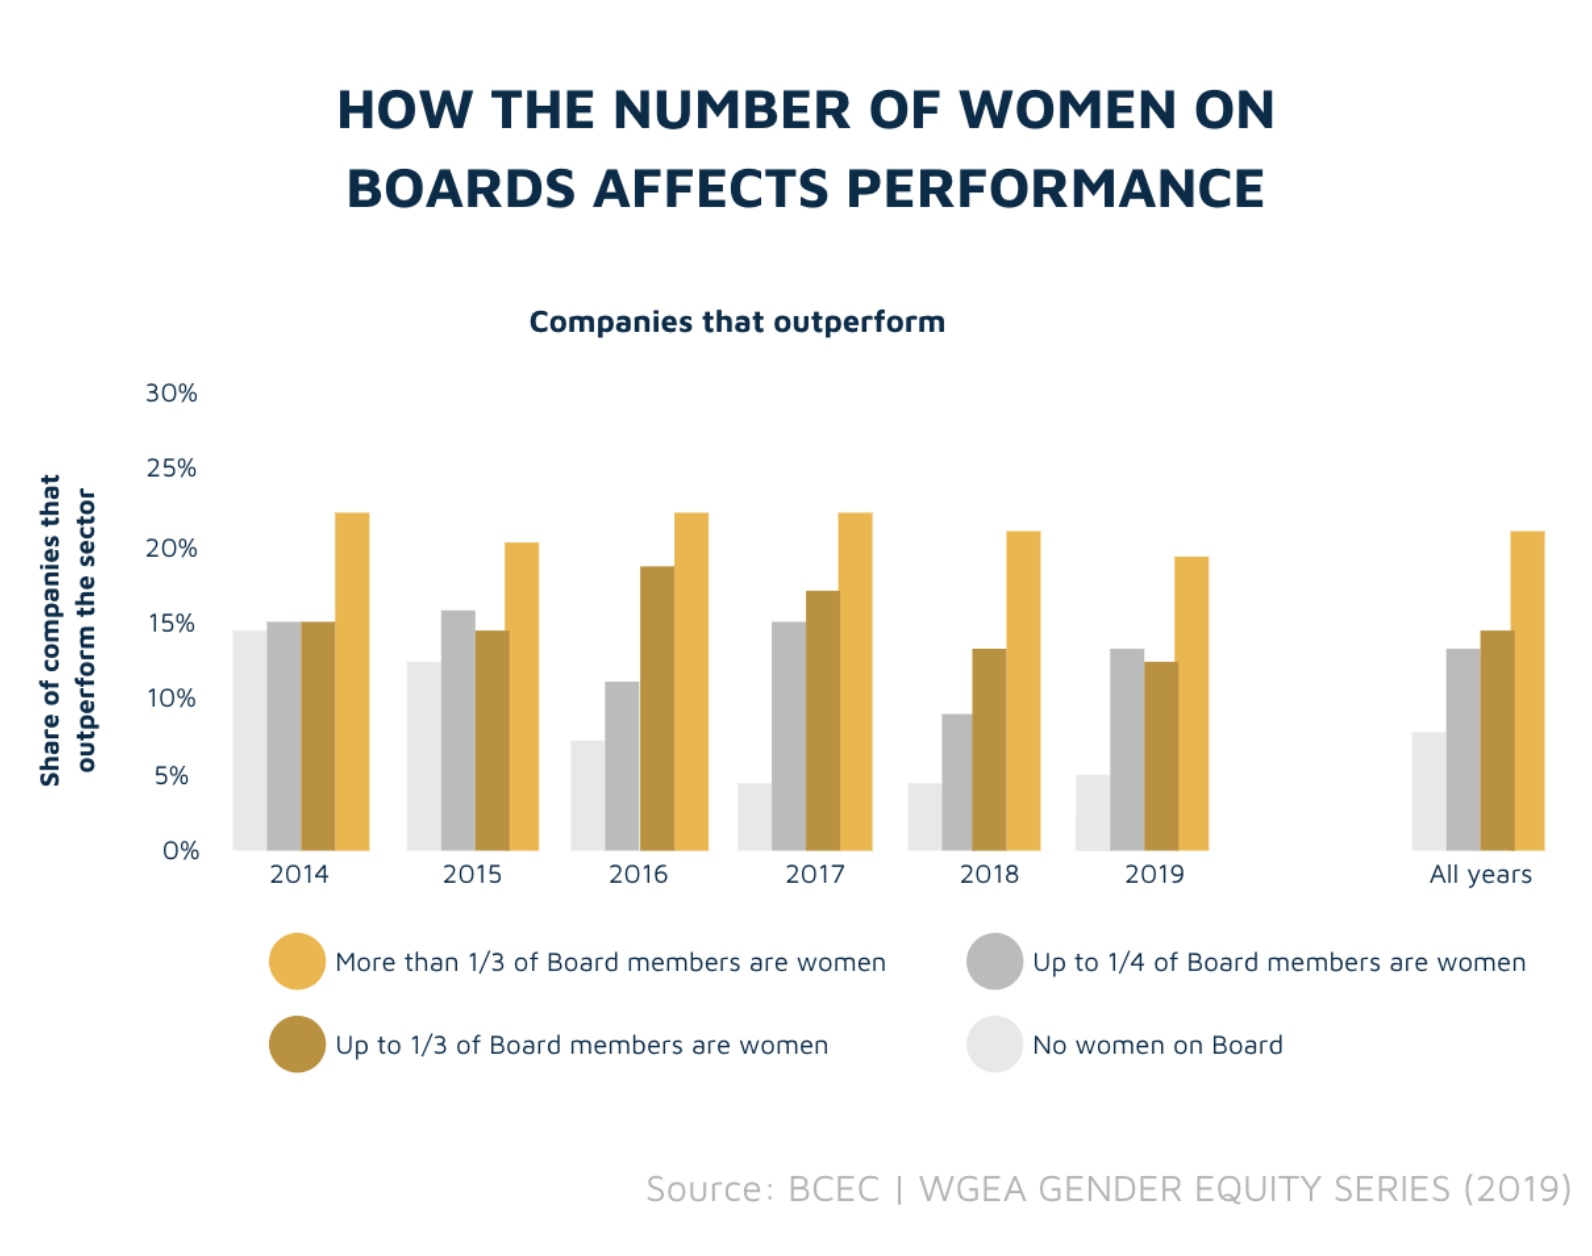 How the number of women on boards affects performance